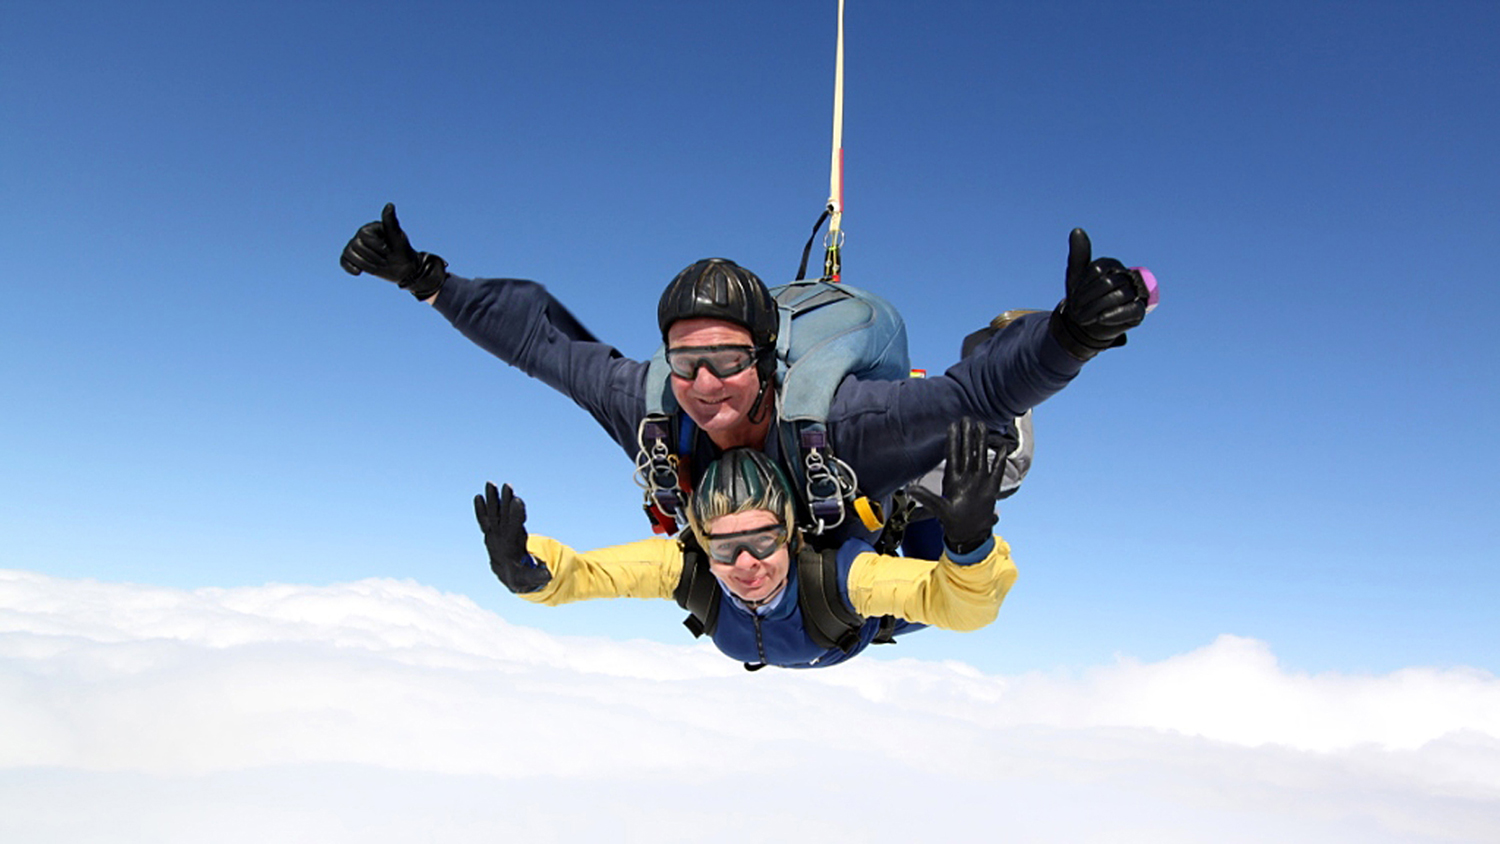 A skydive to raise money for the RNLI